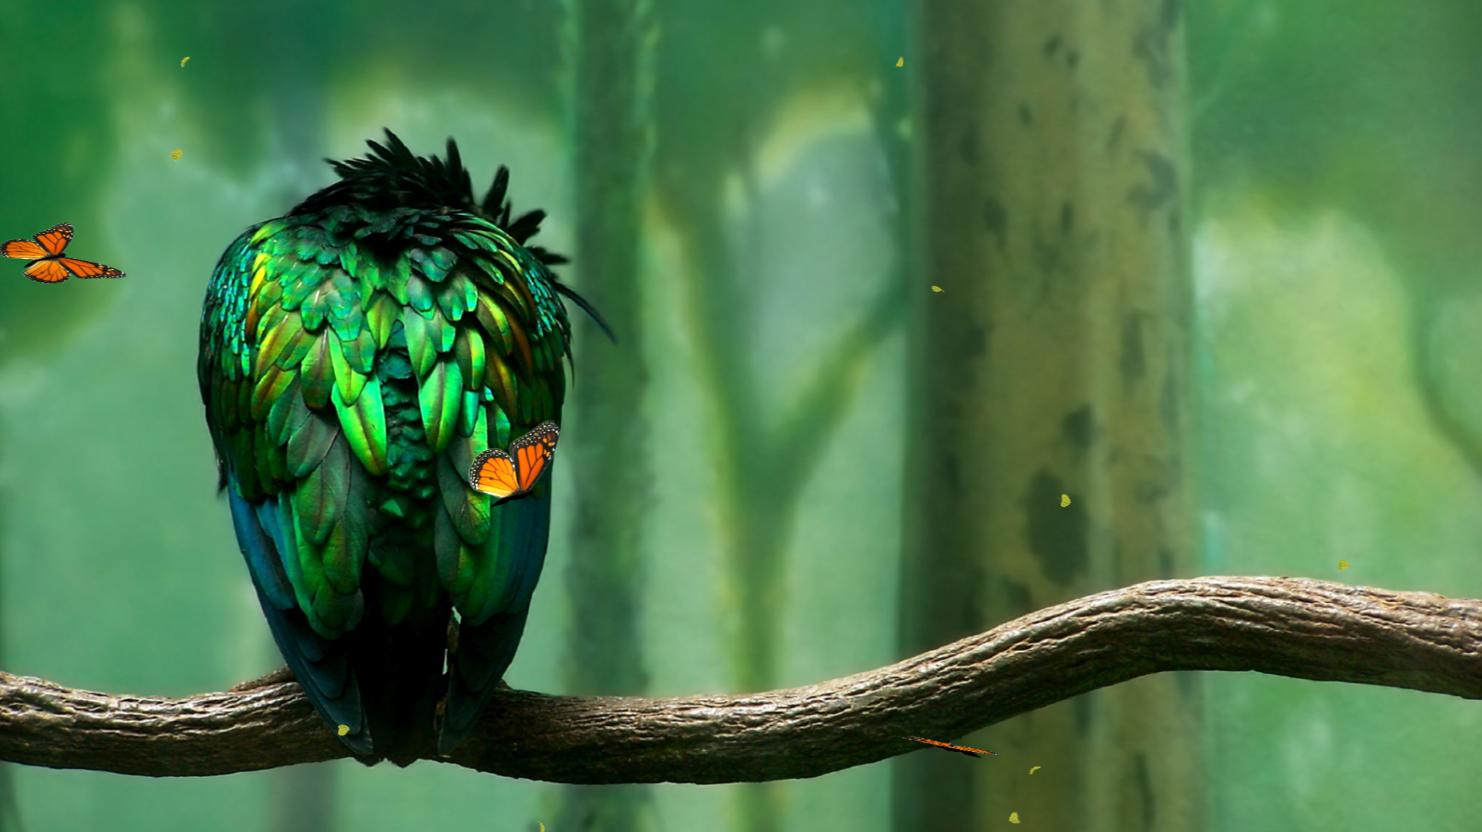 Green Bird Screensaver